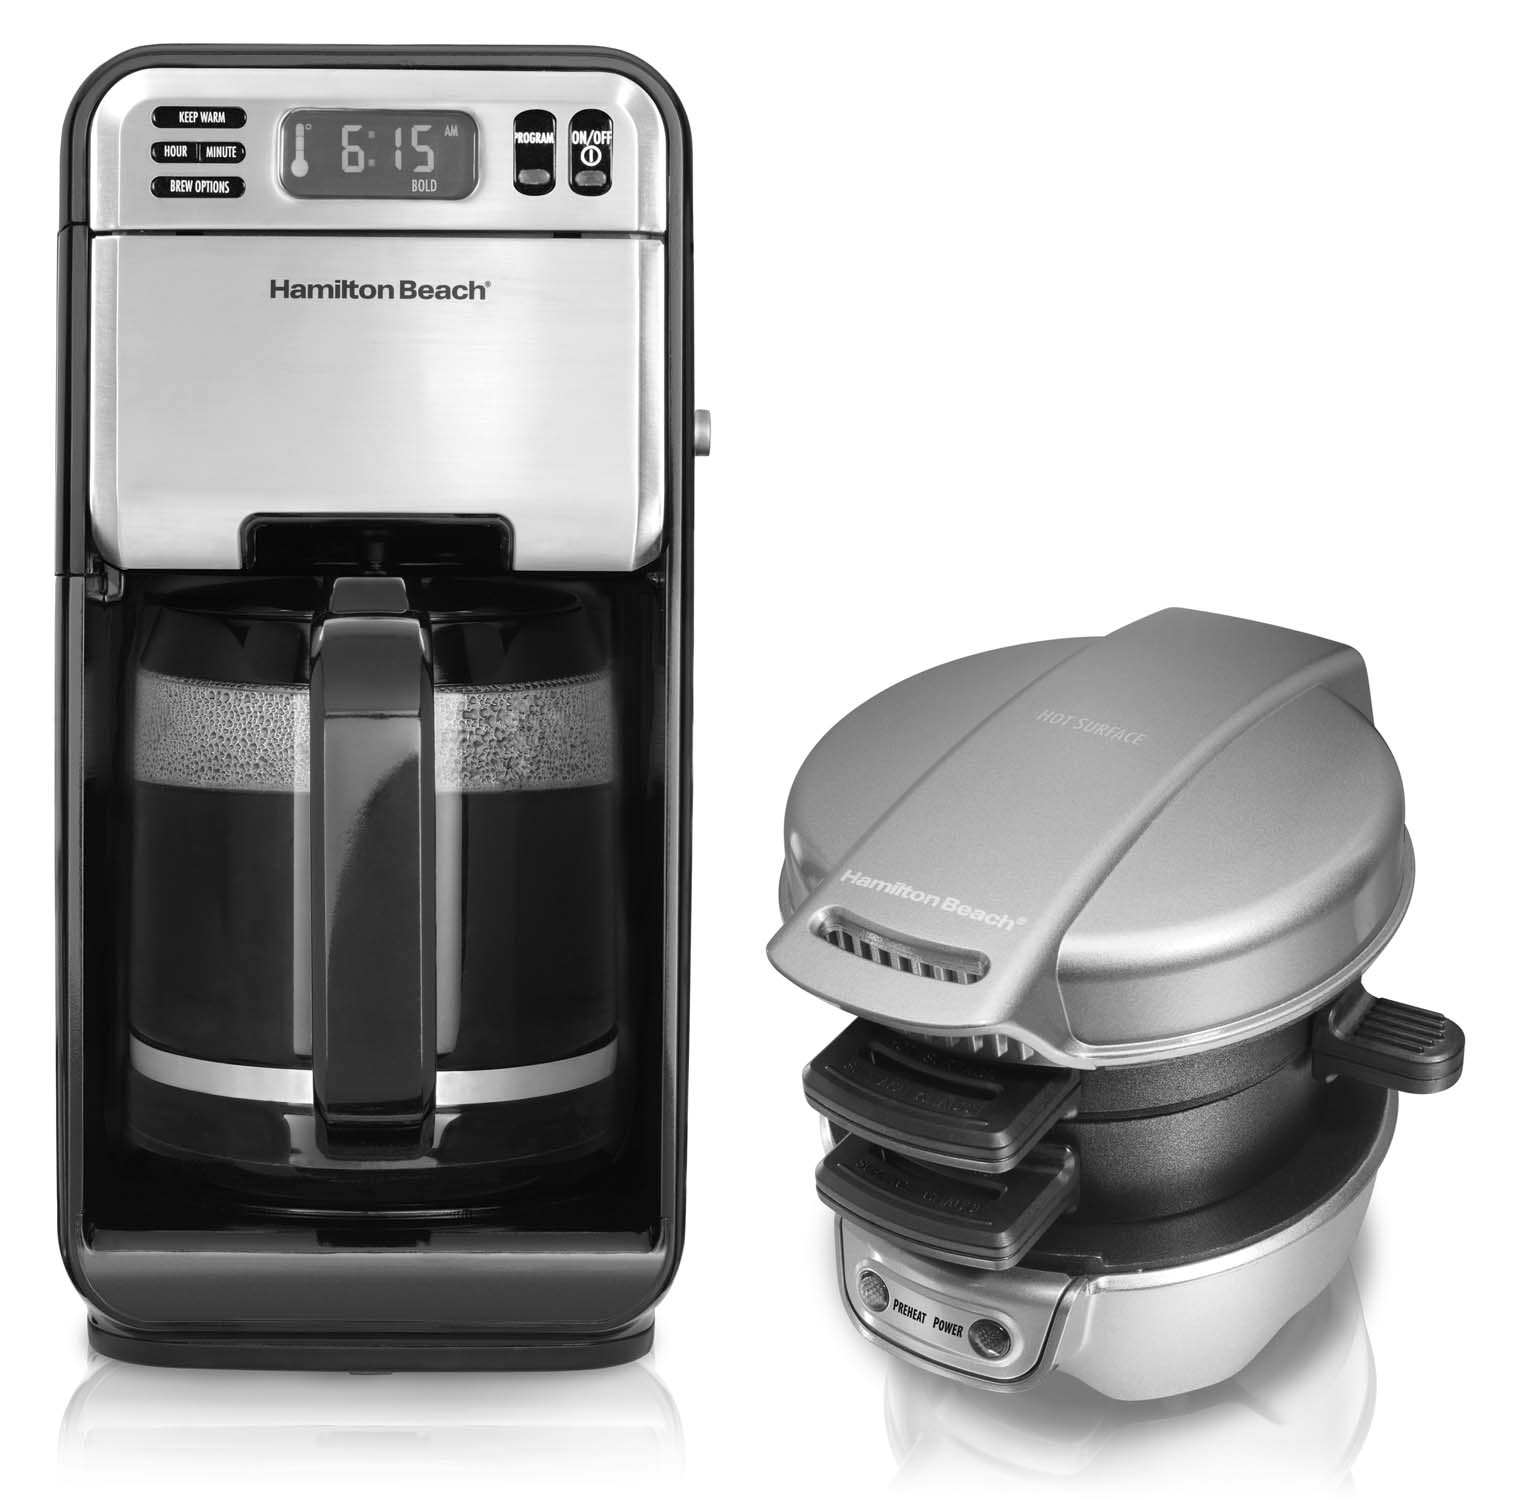 Hamilton Beach 12 Cup Digital Coffee Maker with Breakfast...